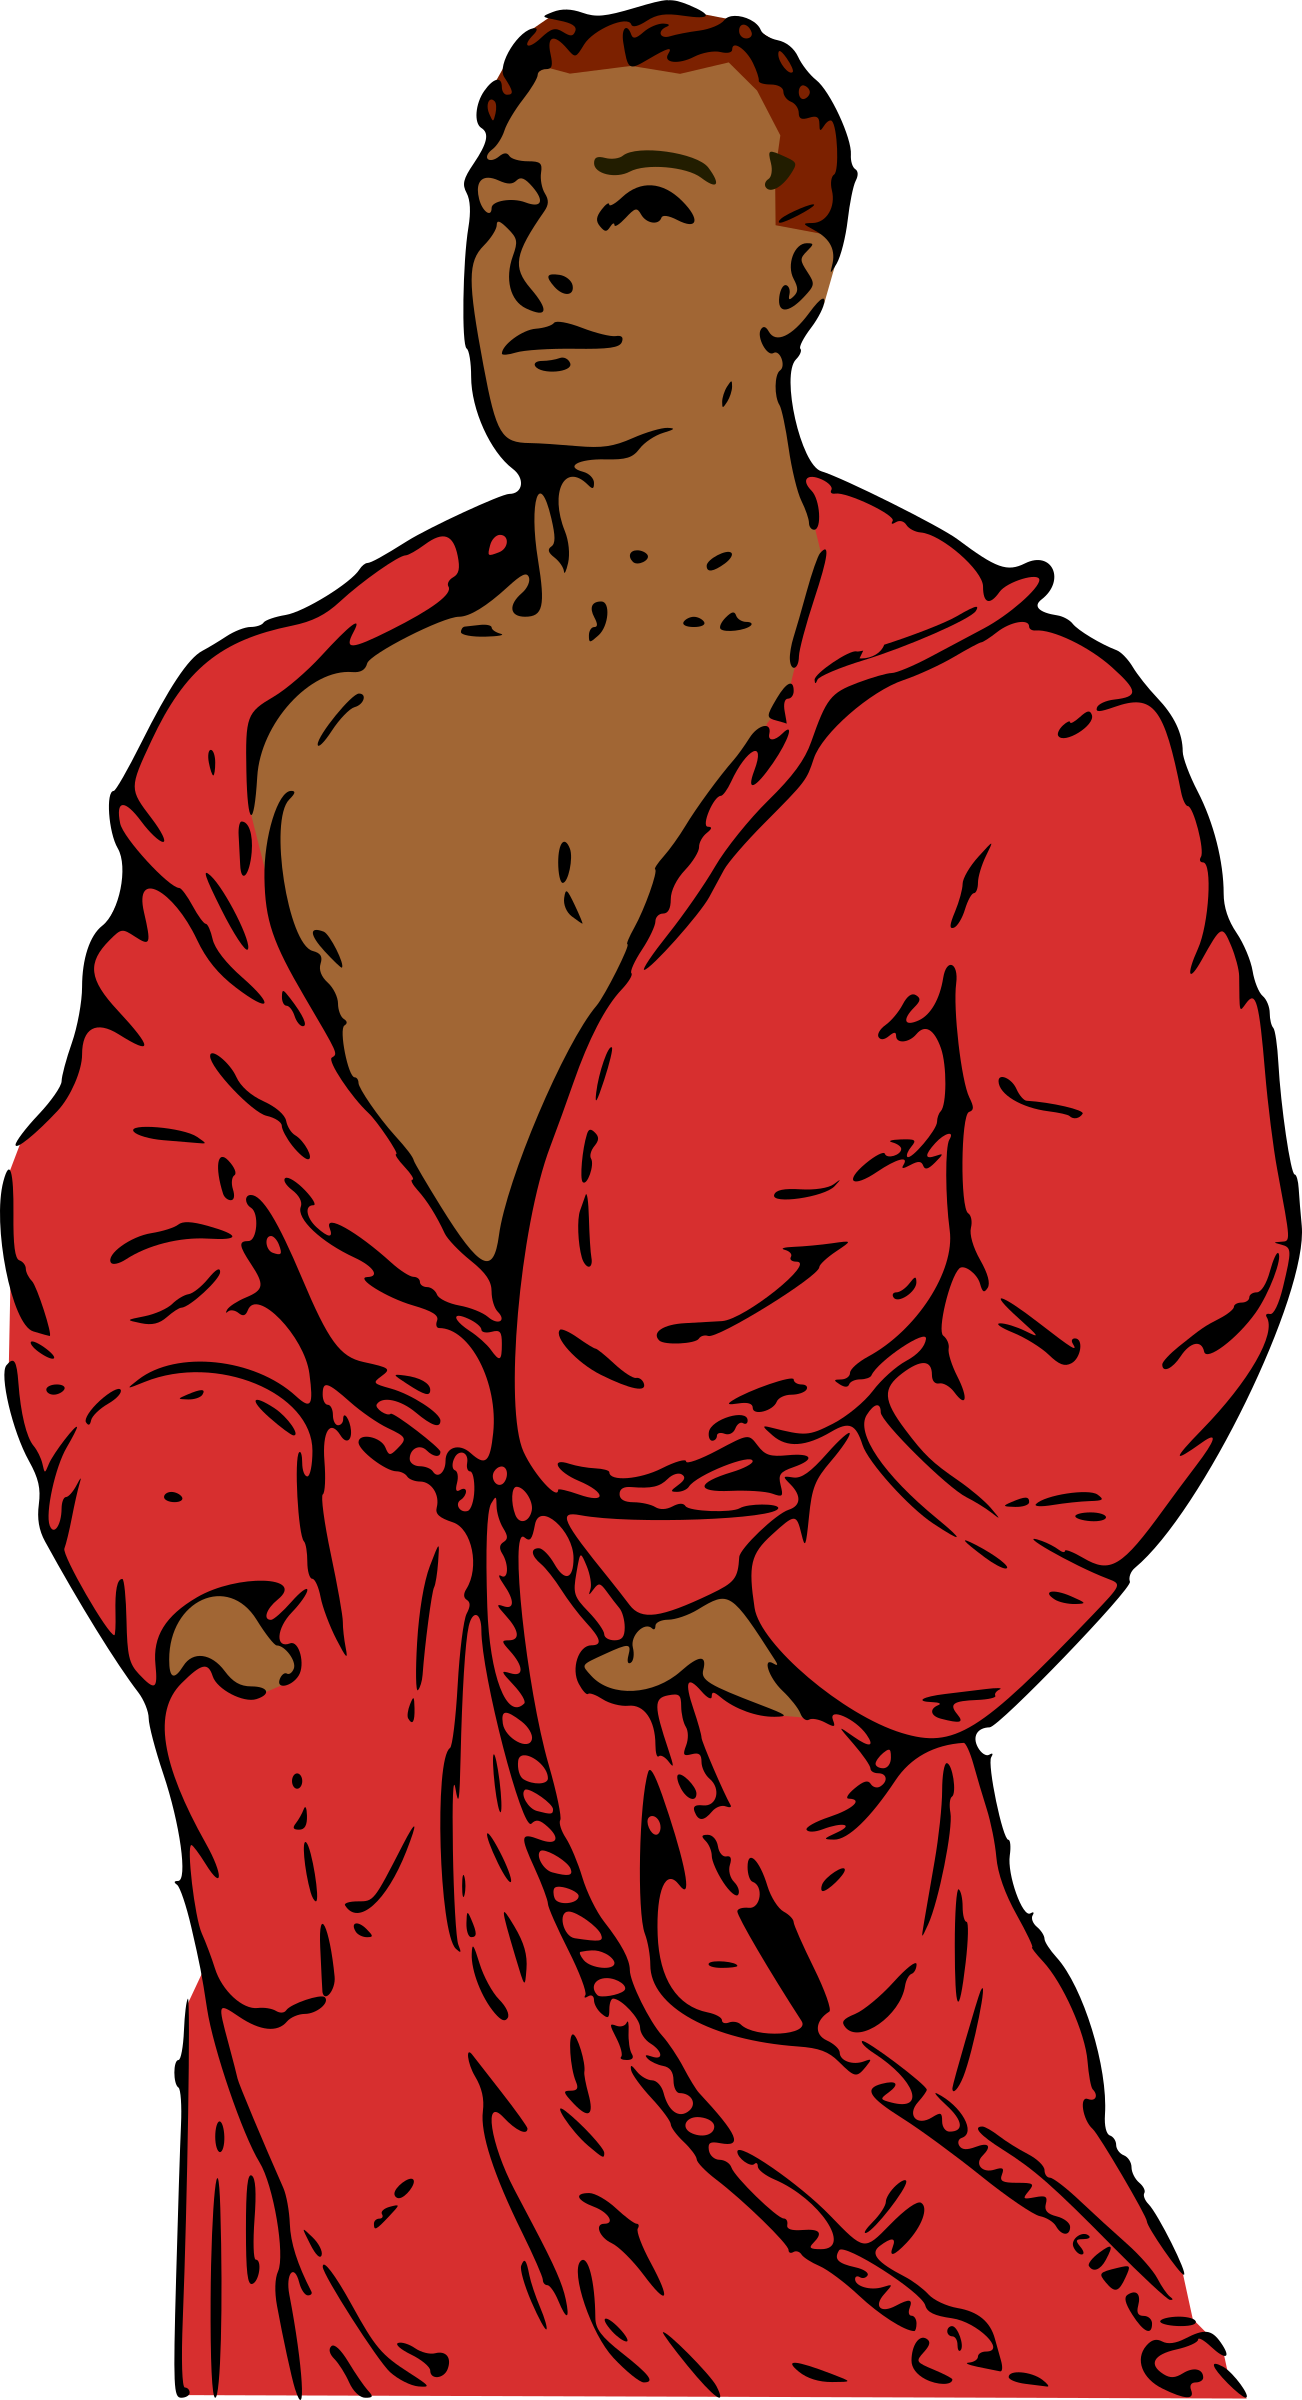 Man in Bathrobe 2 by qubodup